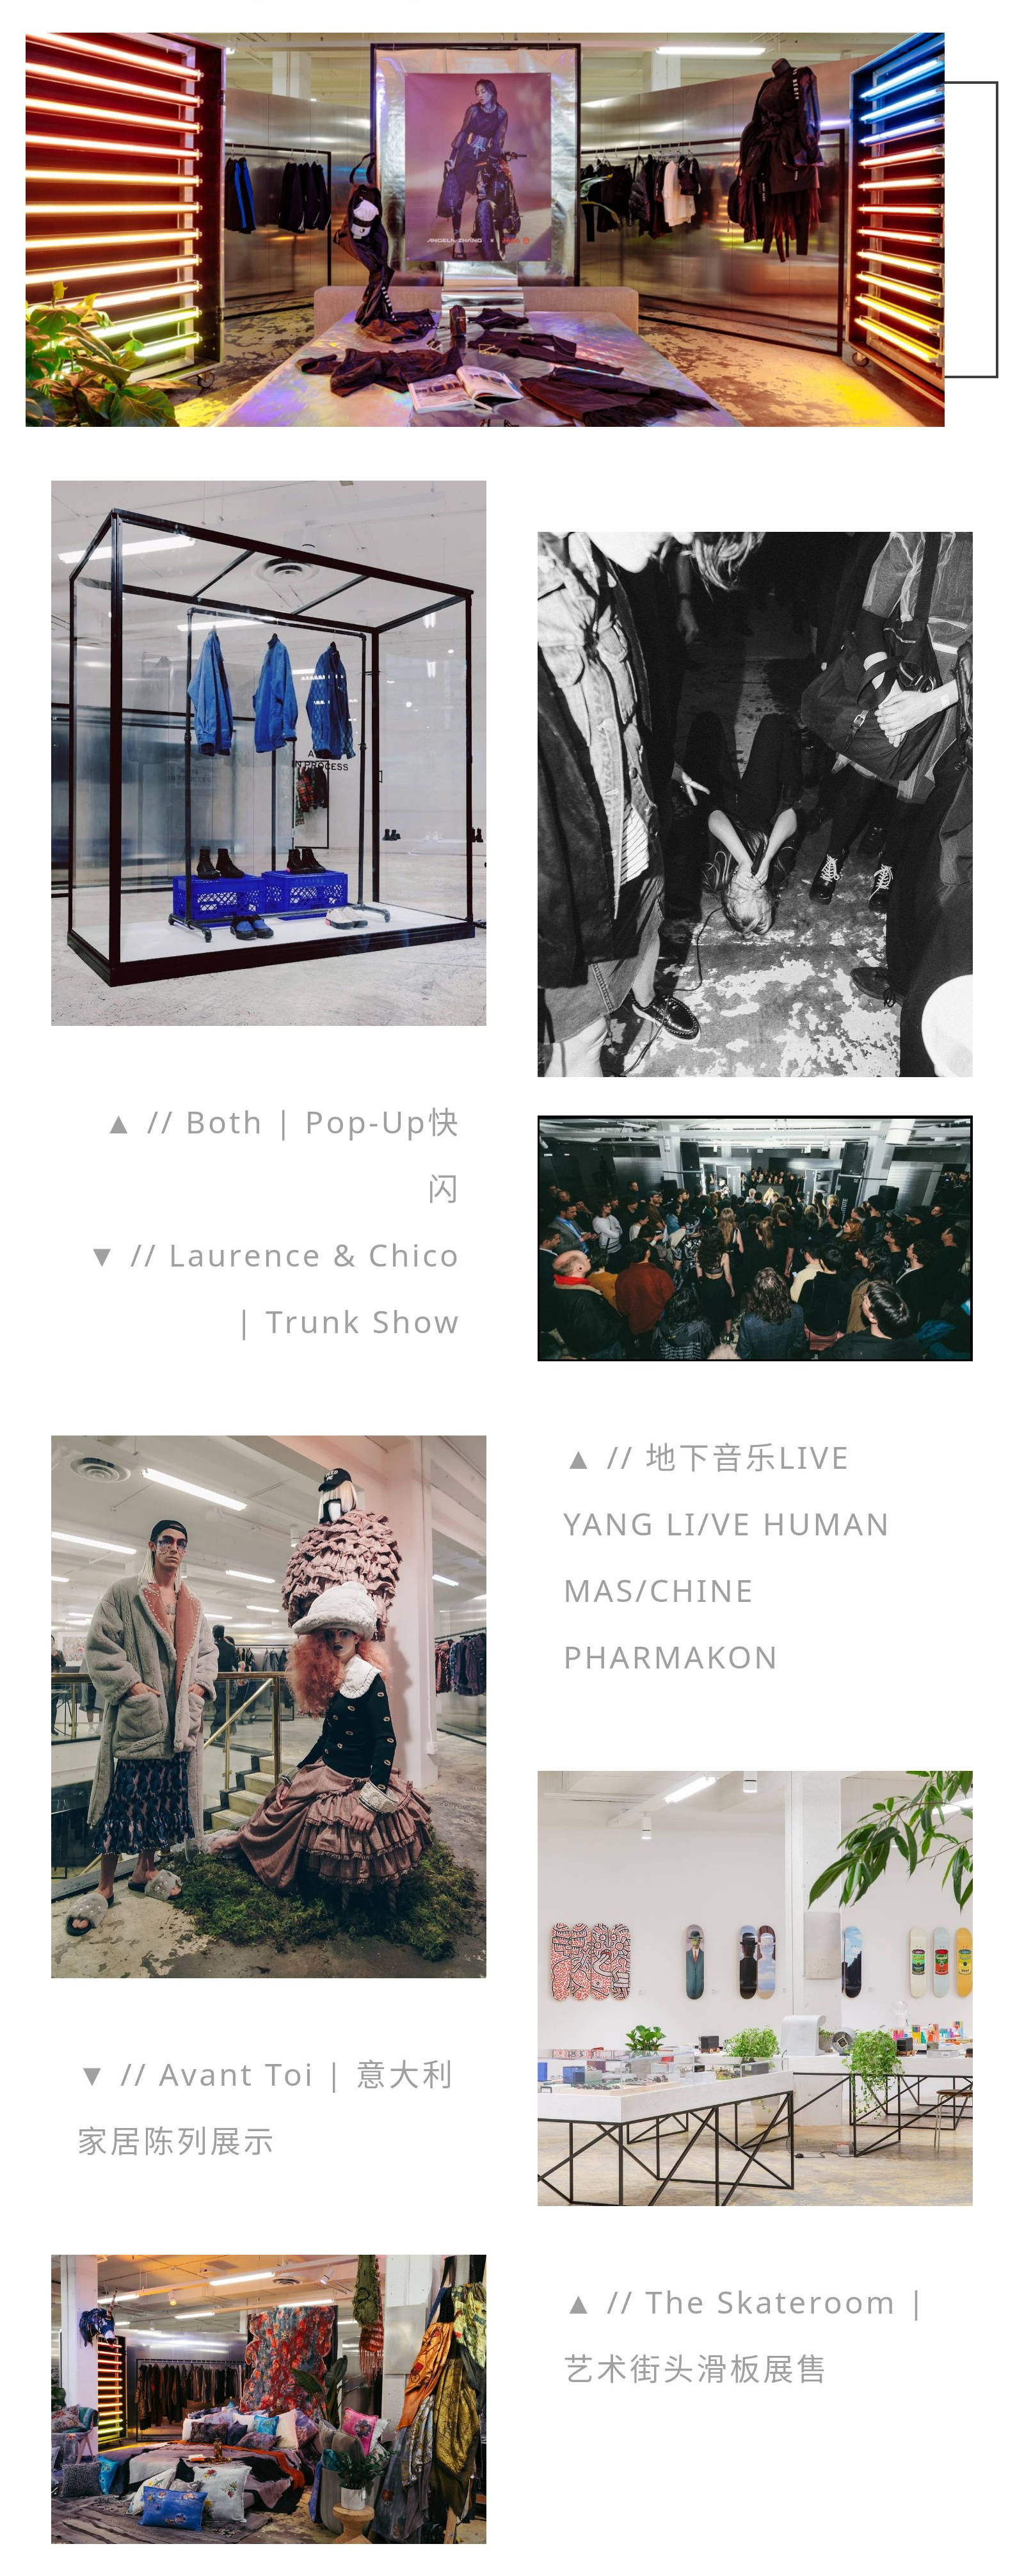 张韶涵首个联名服装品牌发售 Angela Zhang x iHubb HEART BEATS / Both Pop-Up 快闪 / Laurence & Chico Trunk Show / 地下音乐LIVE YANG LI/VE HUMAN MAS/CHINE PHARMAKON / Avant Toi | 意大利家居陈列展示 / The Skateroom | 艺术街头滑板展售